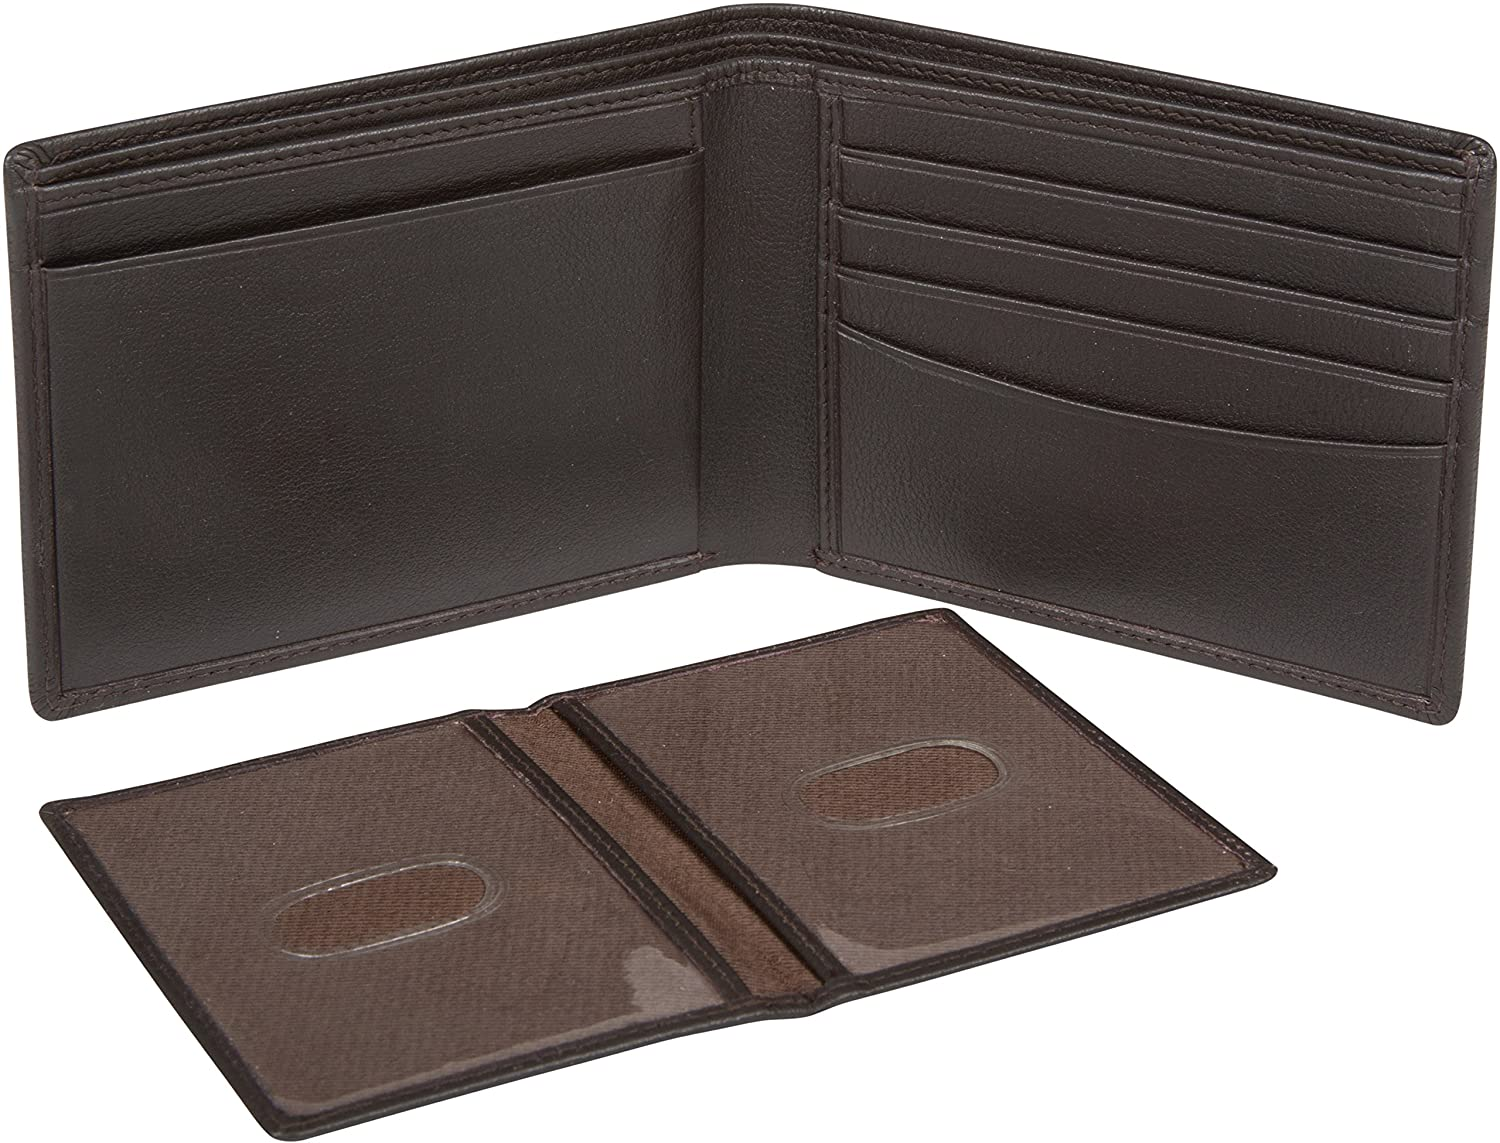 Sakkas Men's Bi-Fold Leather Wallet with Removable ID Case - Comes in a Gift bag